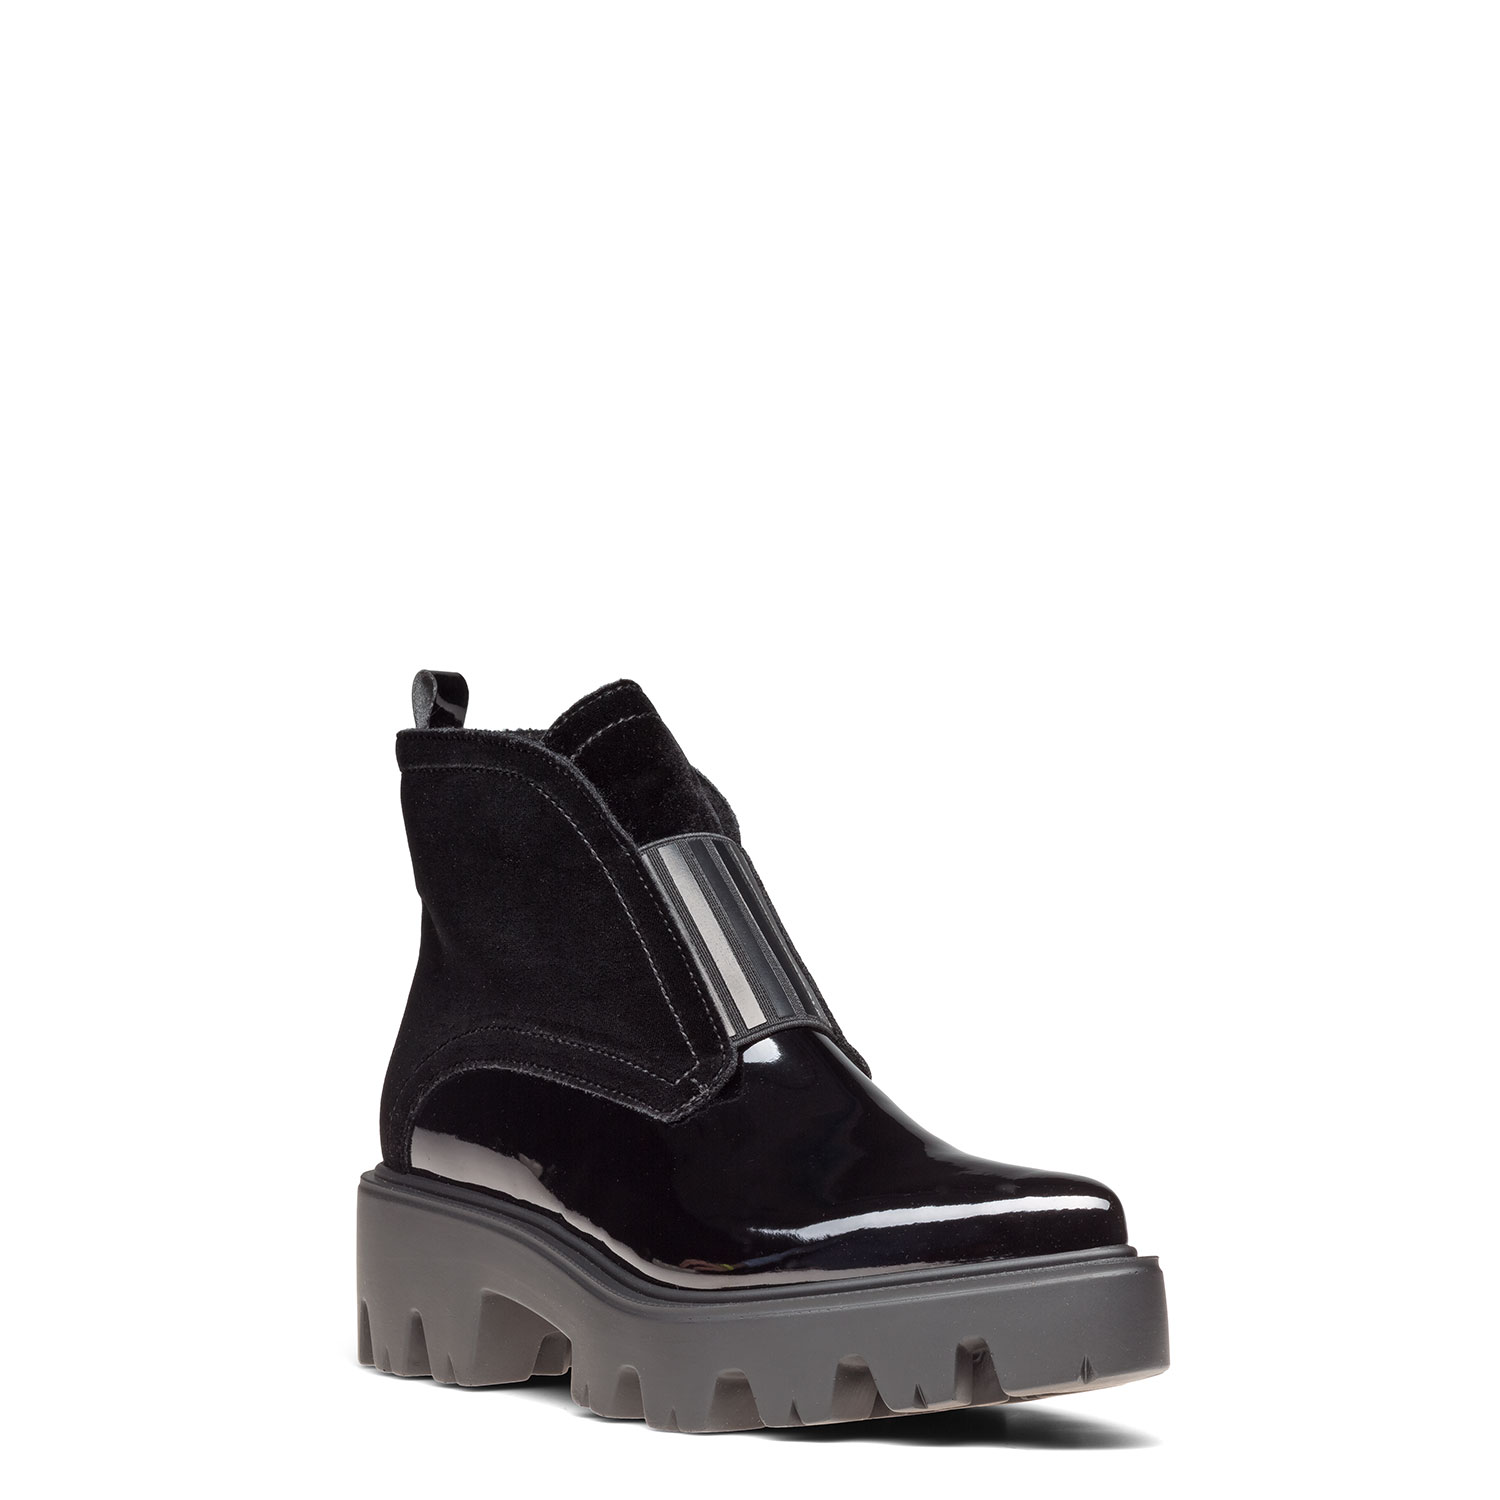 Women's ankle boots CARLO PAZOLINI AS-RES1-1